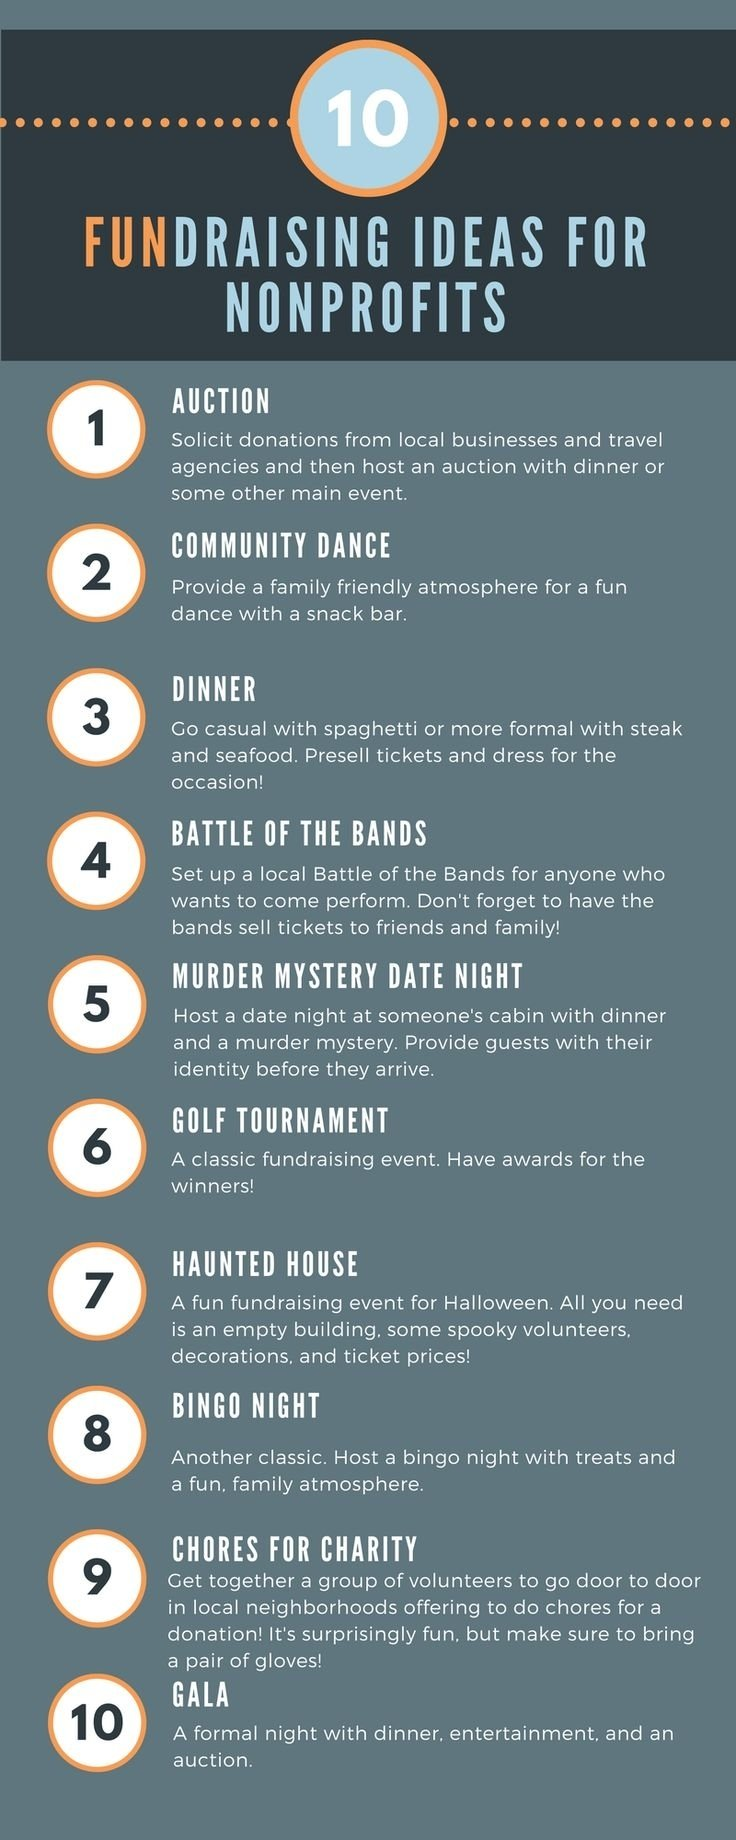 10 Nice Fundraising Ideas For College Clubs 776 best fundraising images on pinterest fundraiser games 2021